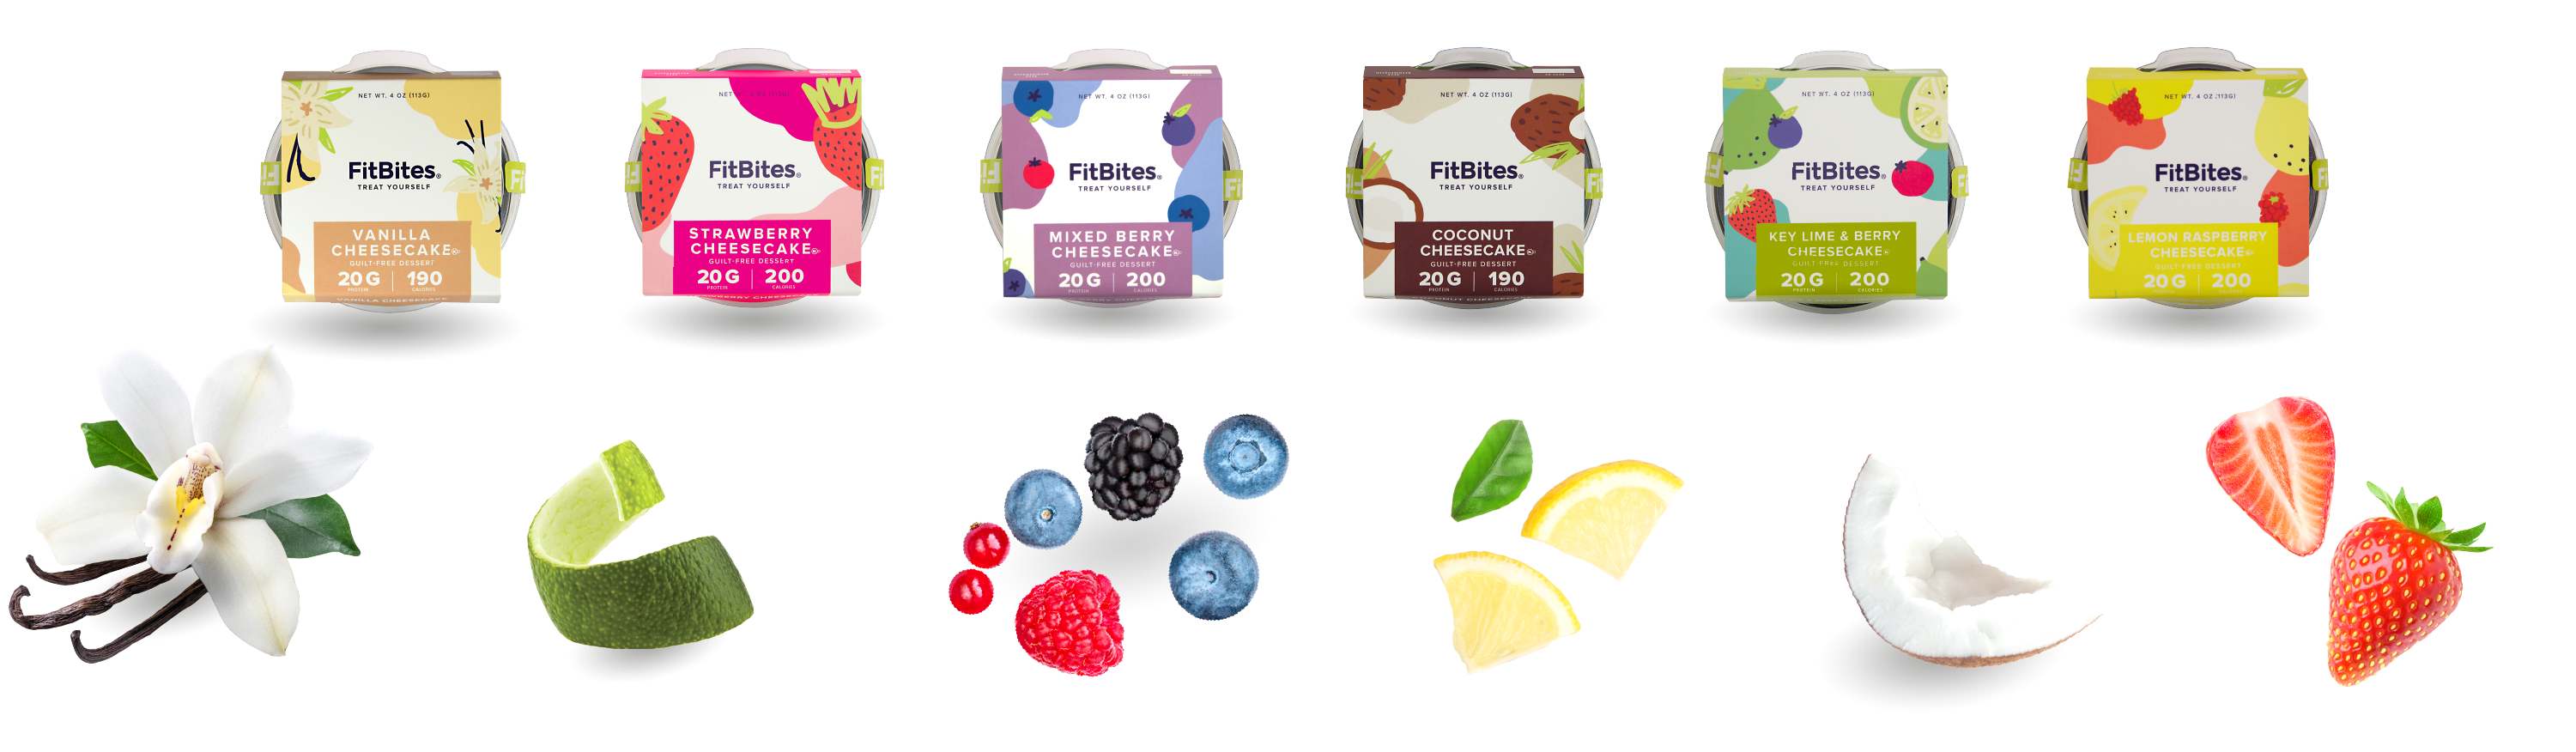 FitBites Products Hero Image